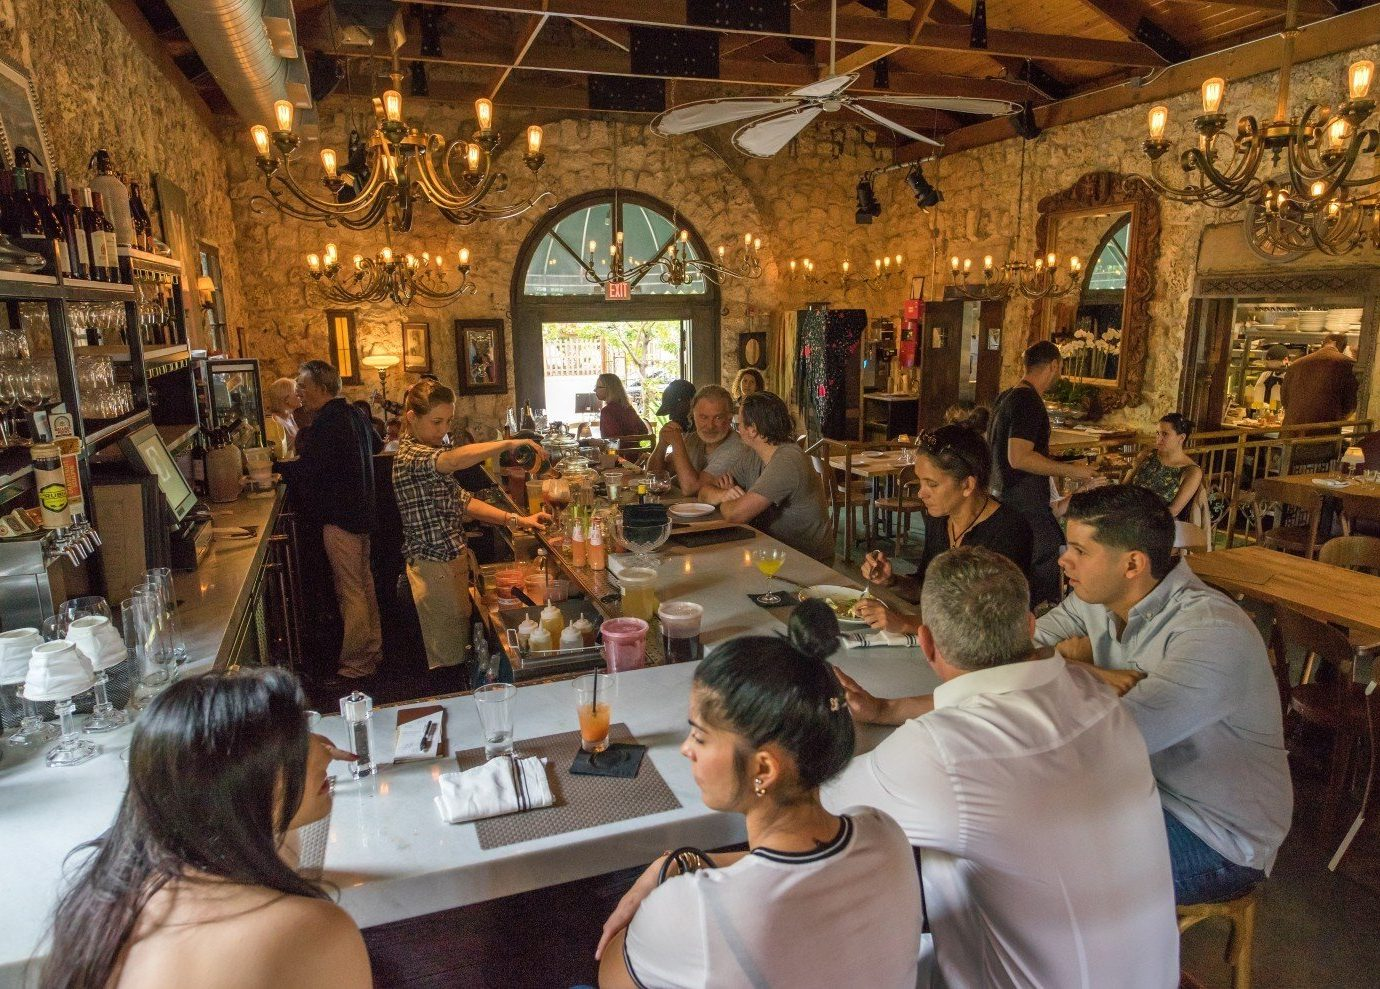 Trip Ideas person indoor restaurant meal people Bar